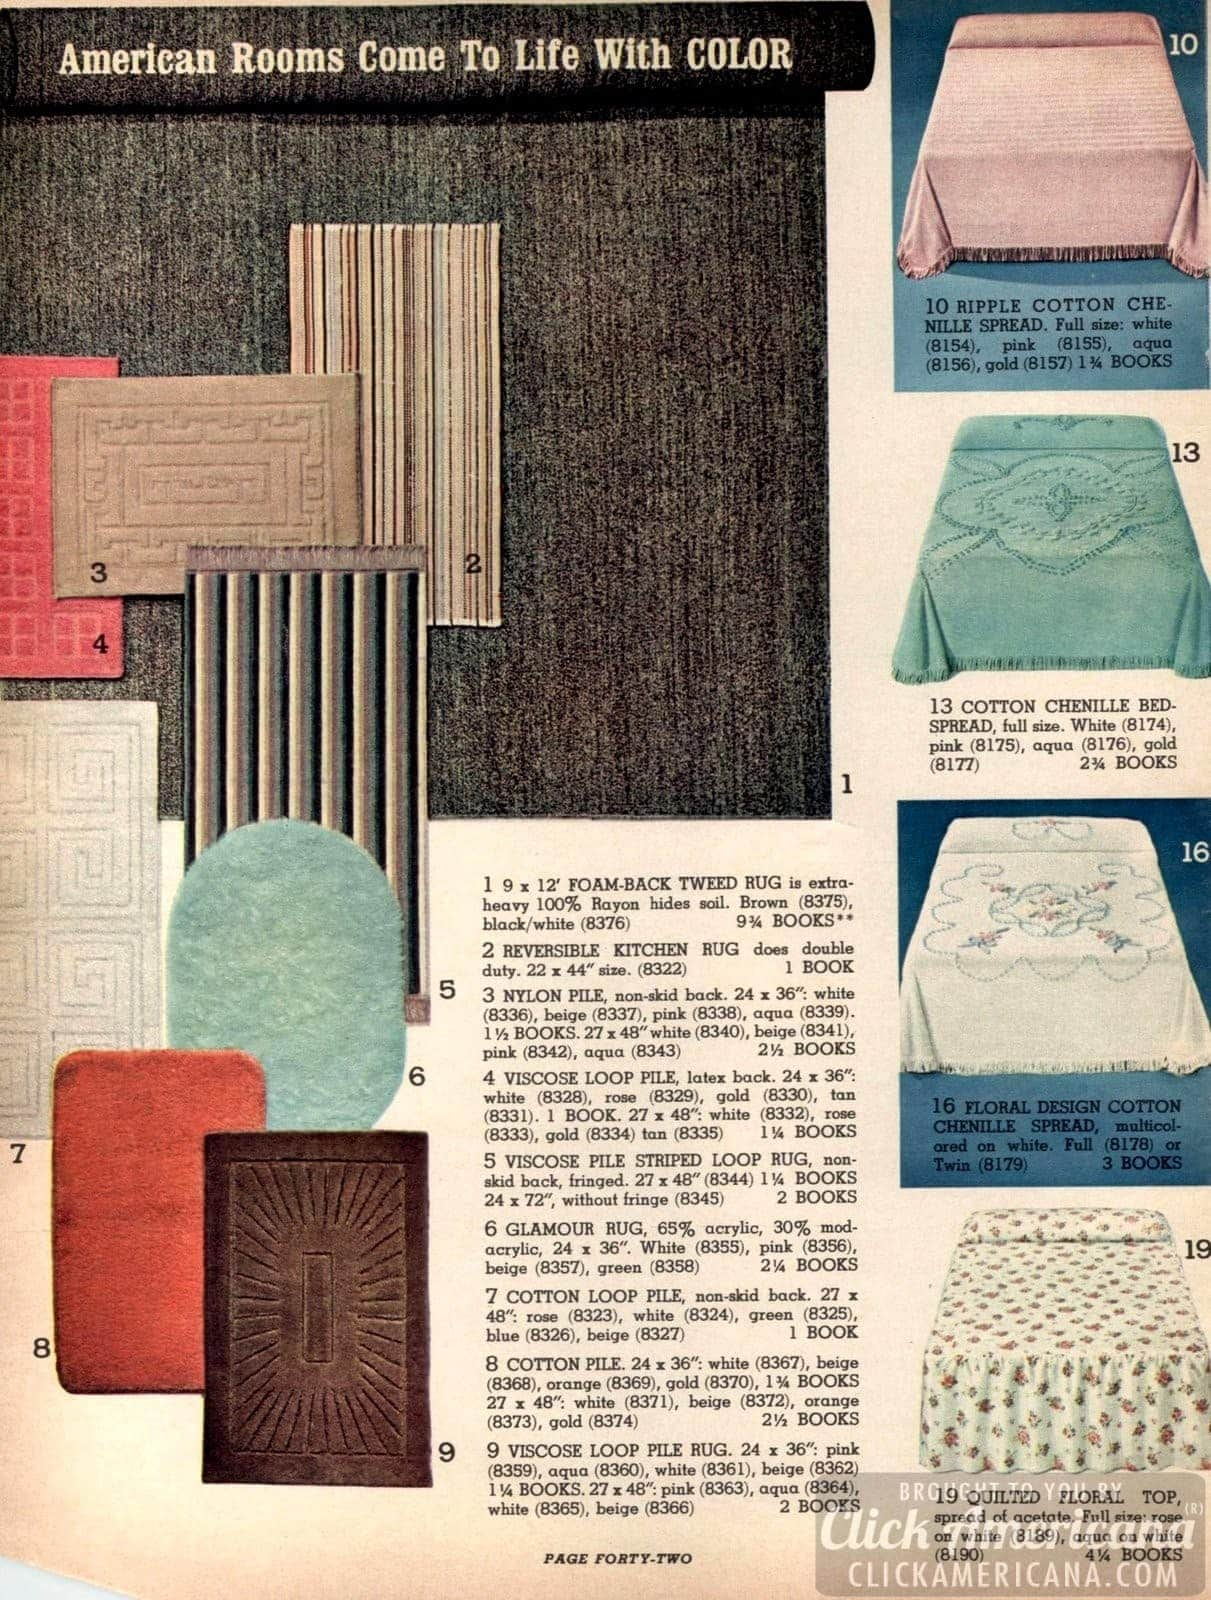 Vintage home decor and furnishings - bedspreads, rugs